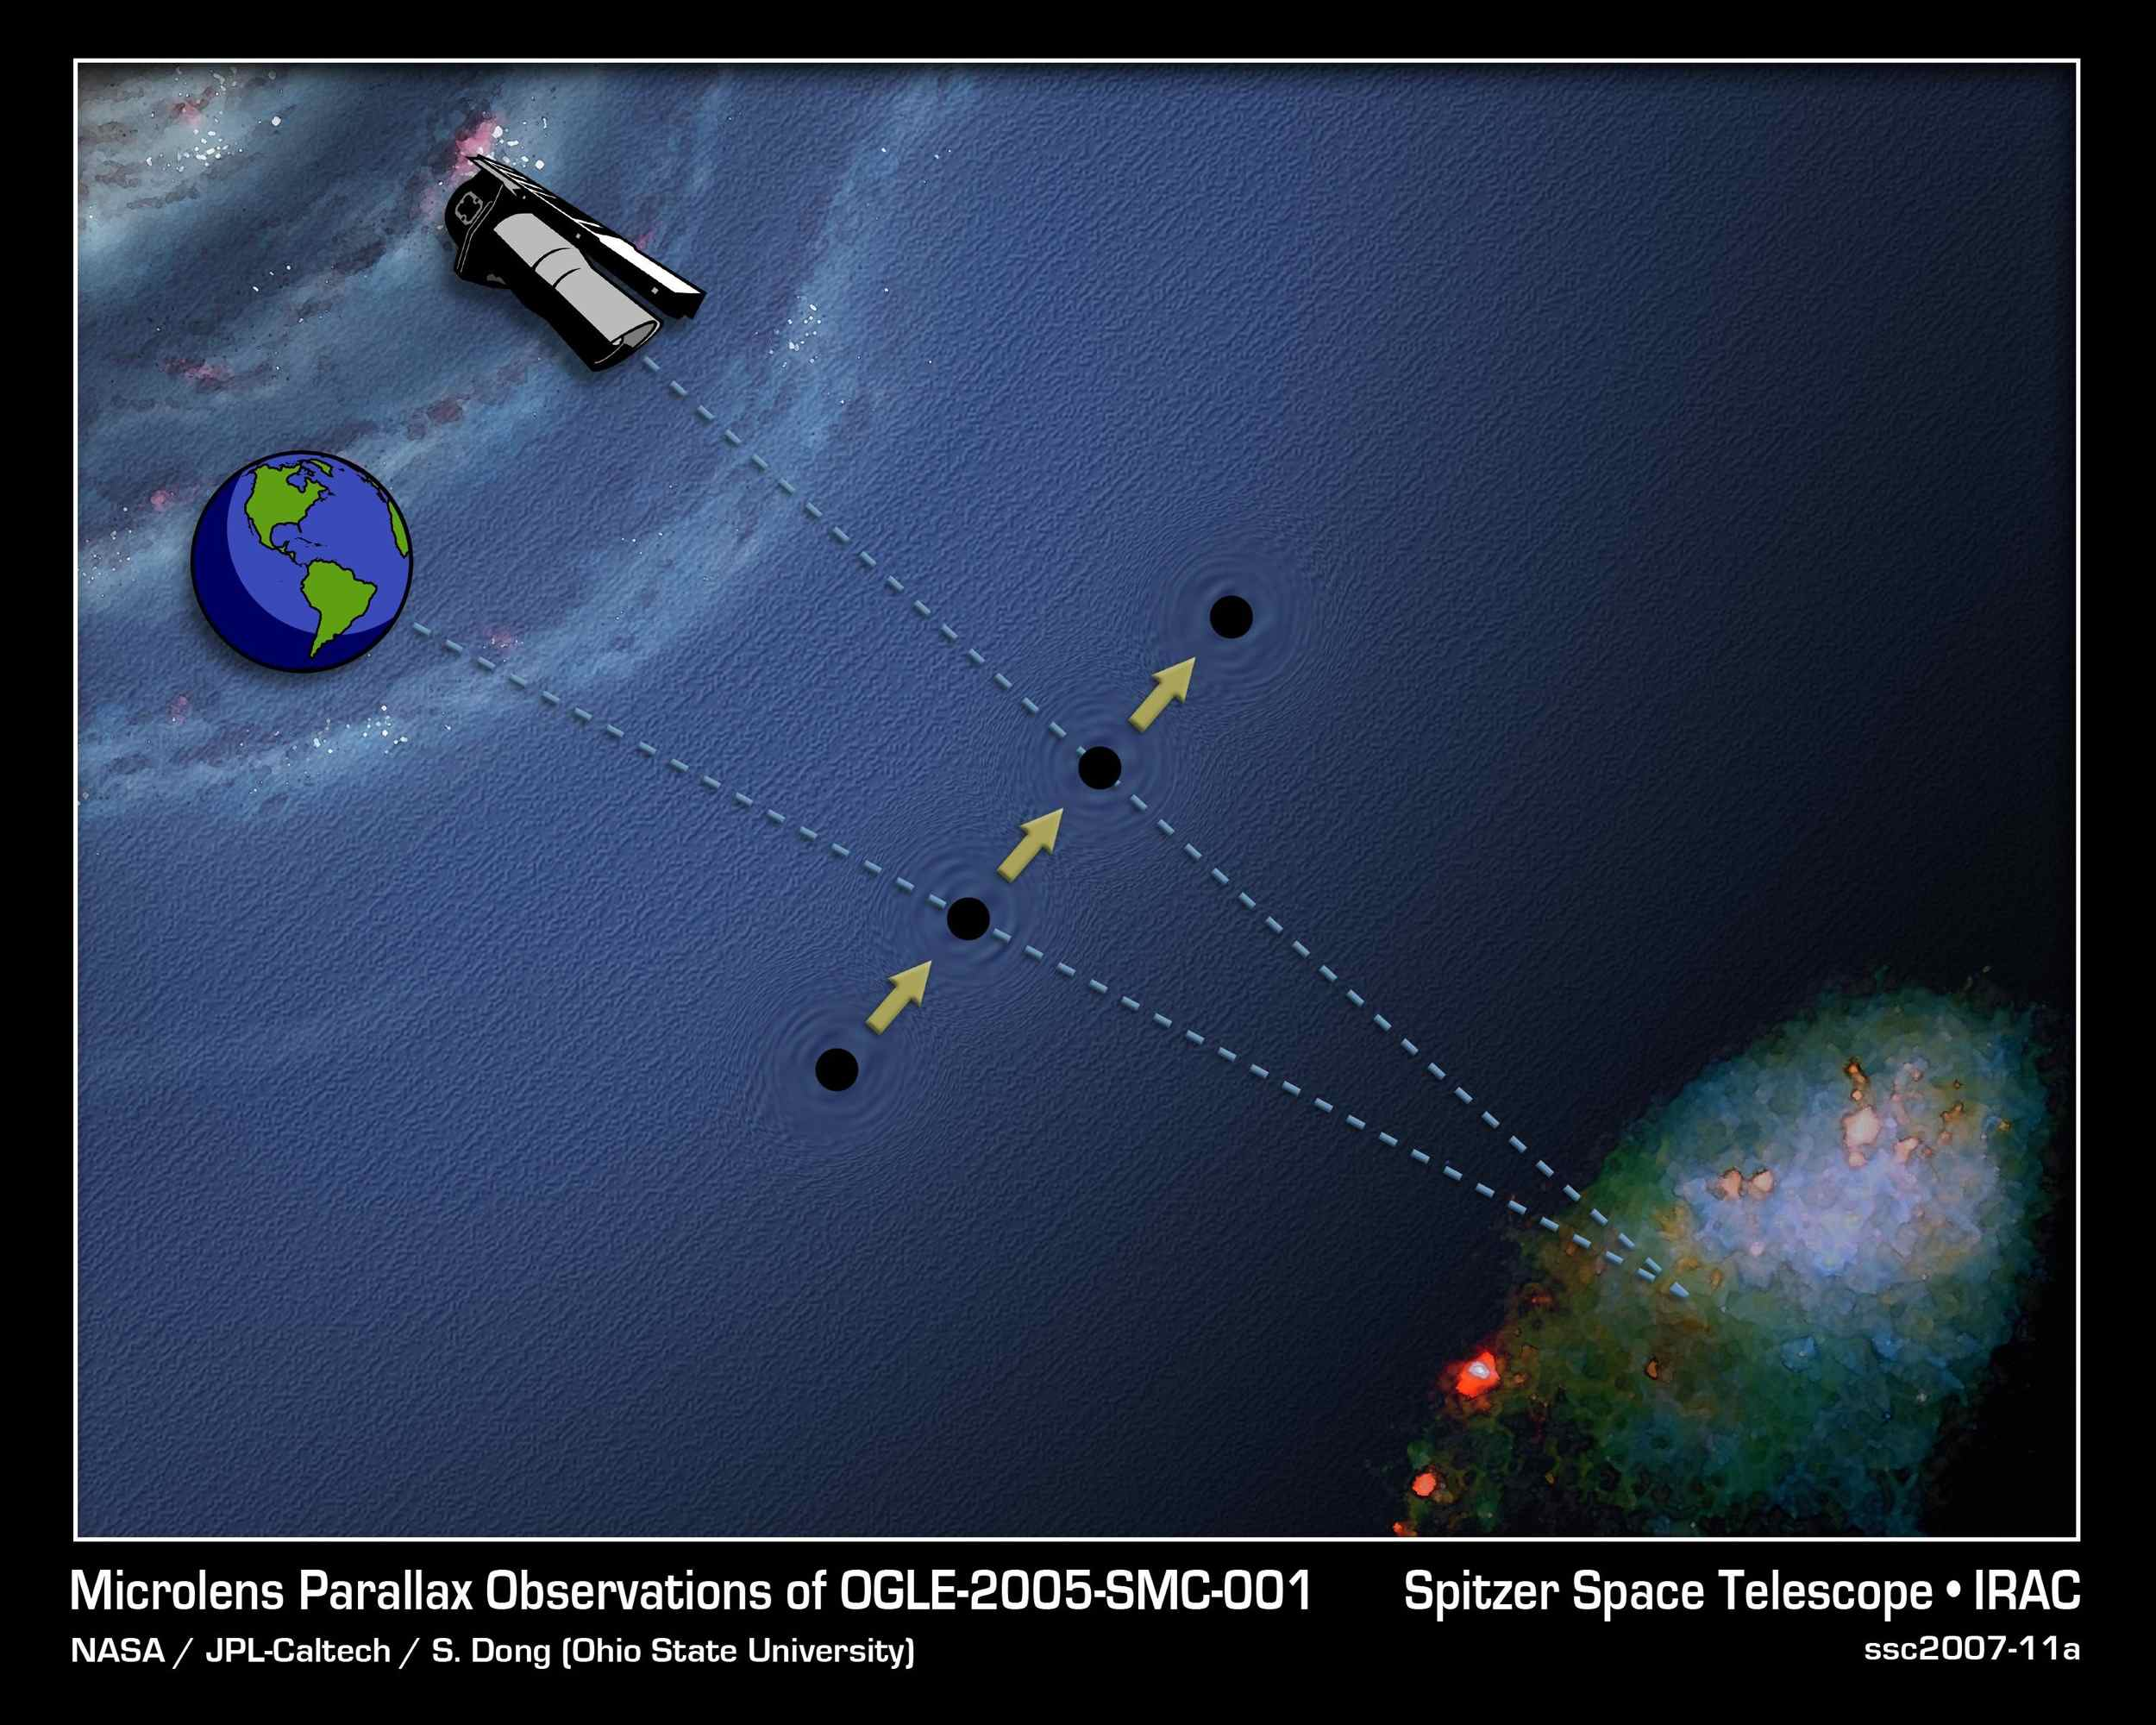 Using the unique orbit of NASA's Spitzer Space Telescope and a depth-perceiving trick called parallax, astronomers have determined the distance to an invisible Milky Way object called OGLE-2005-SMC-001.